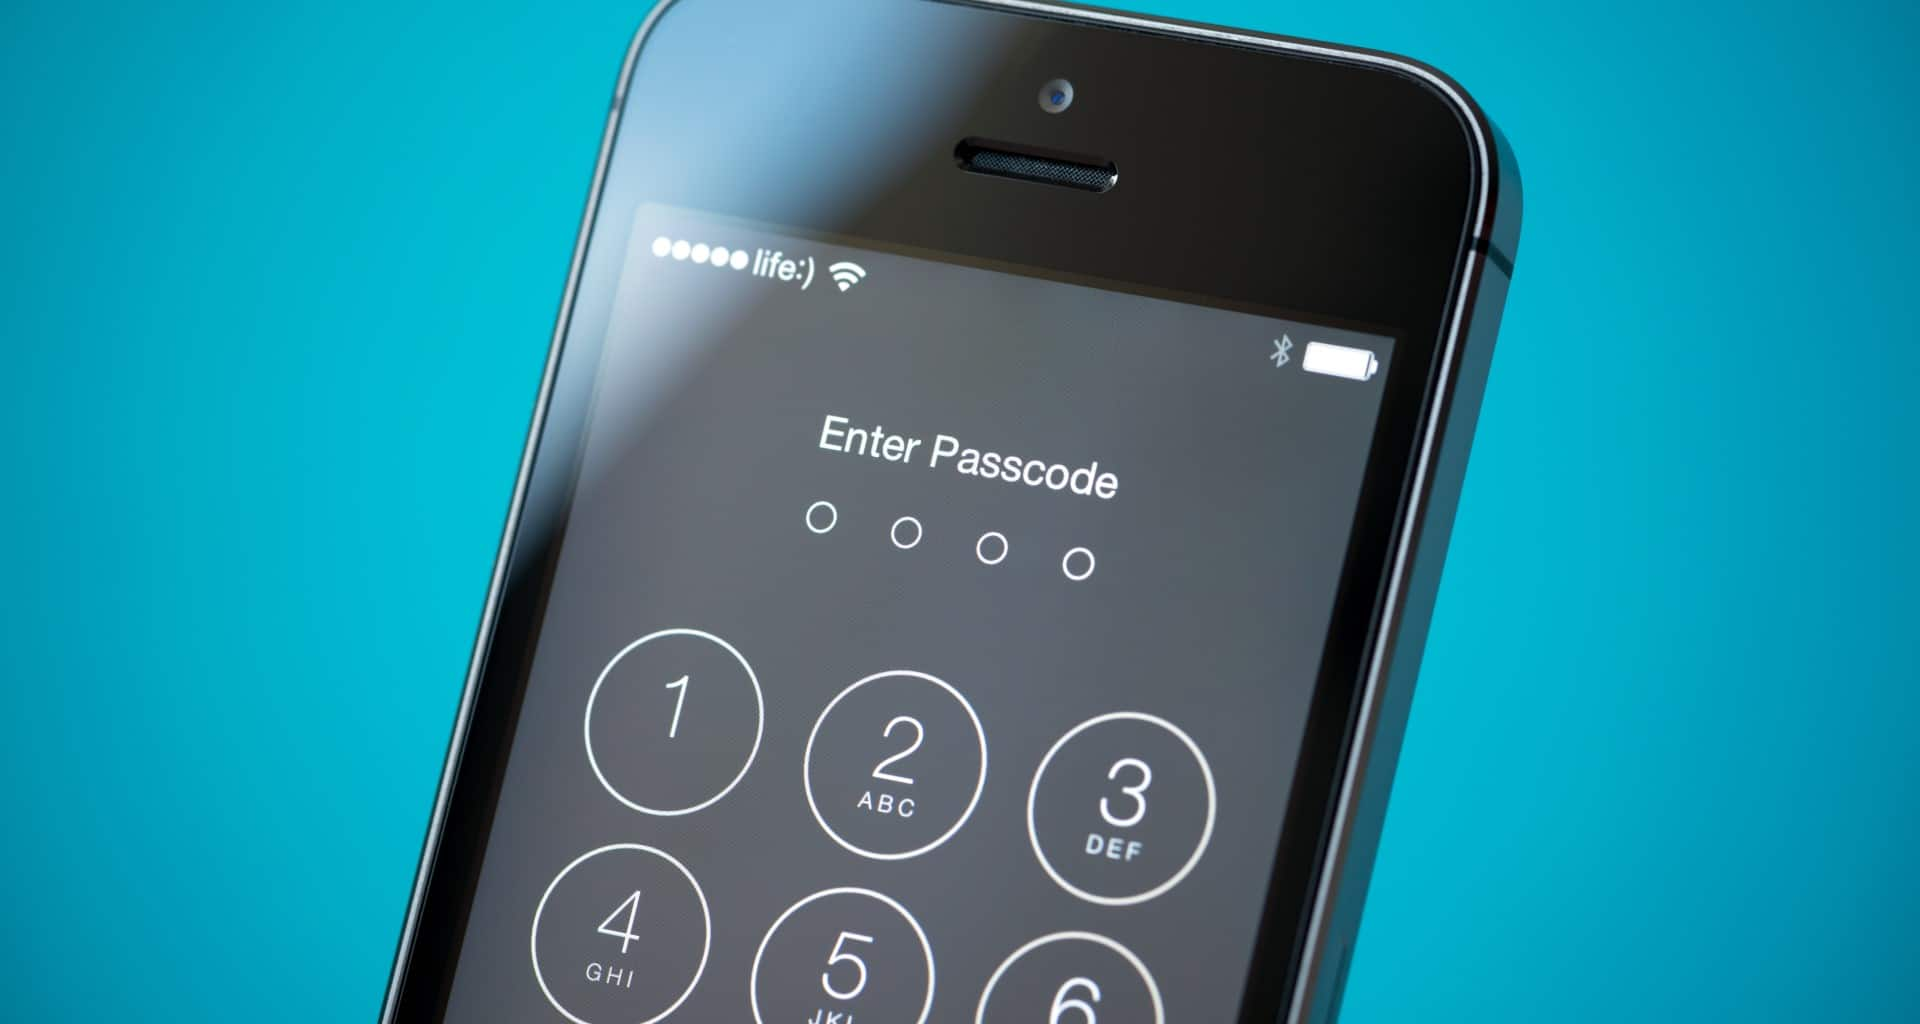 Evaluating new iPhone privacy settings